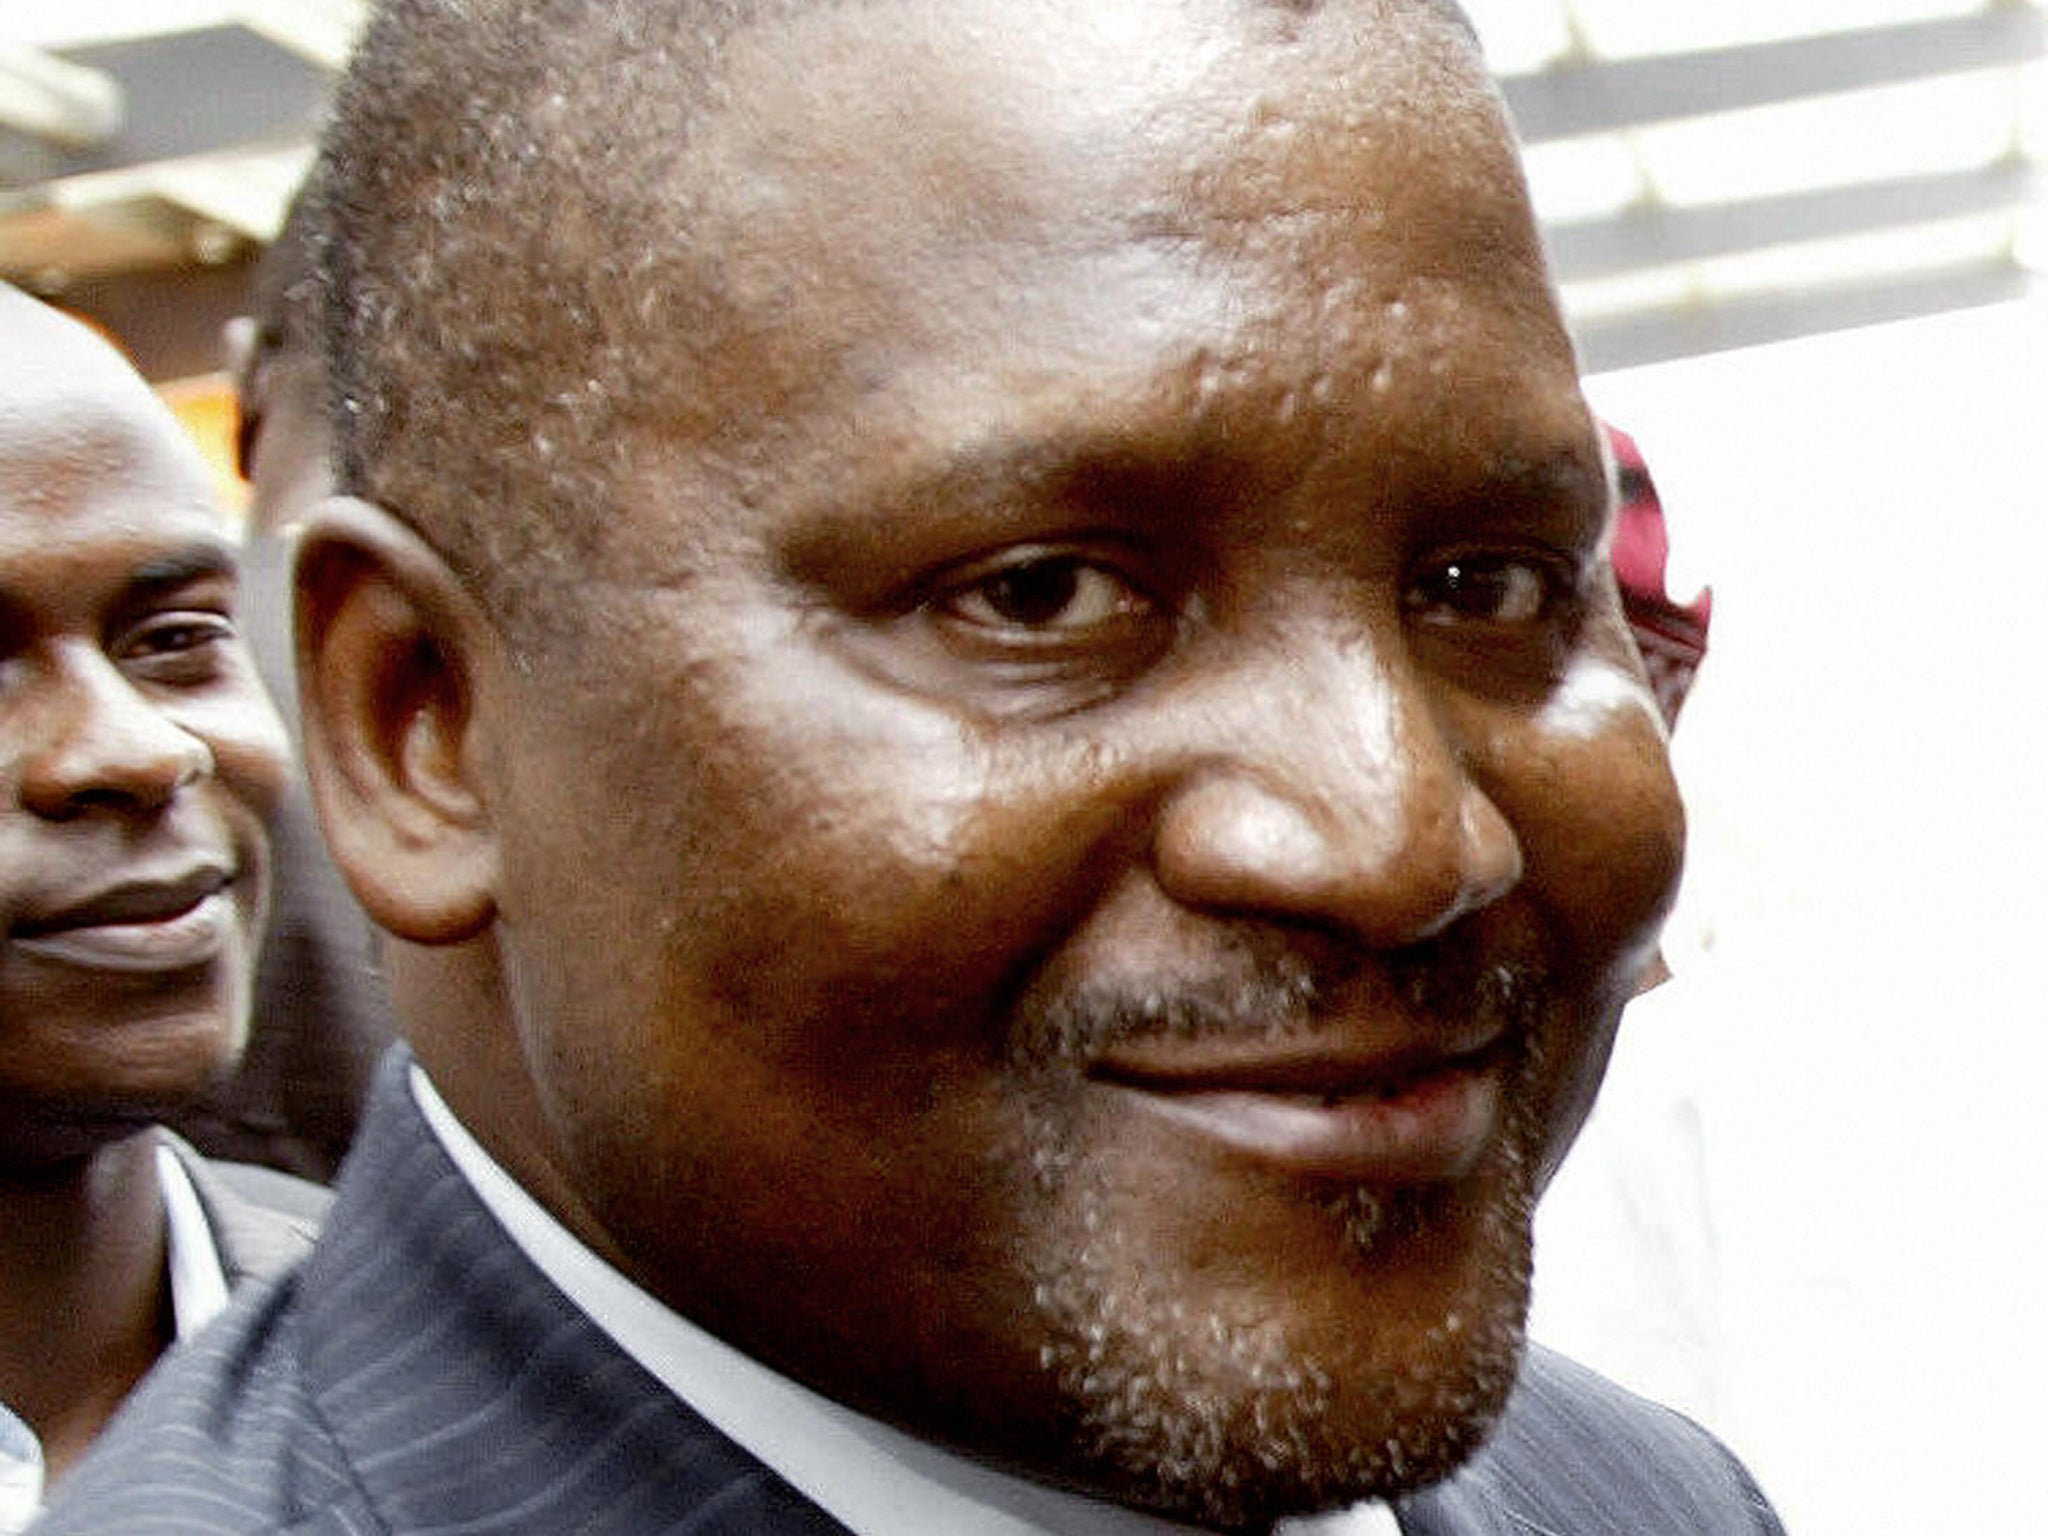 Africa's richest man says he withdrew $10m from bank 'just